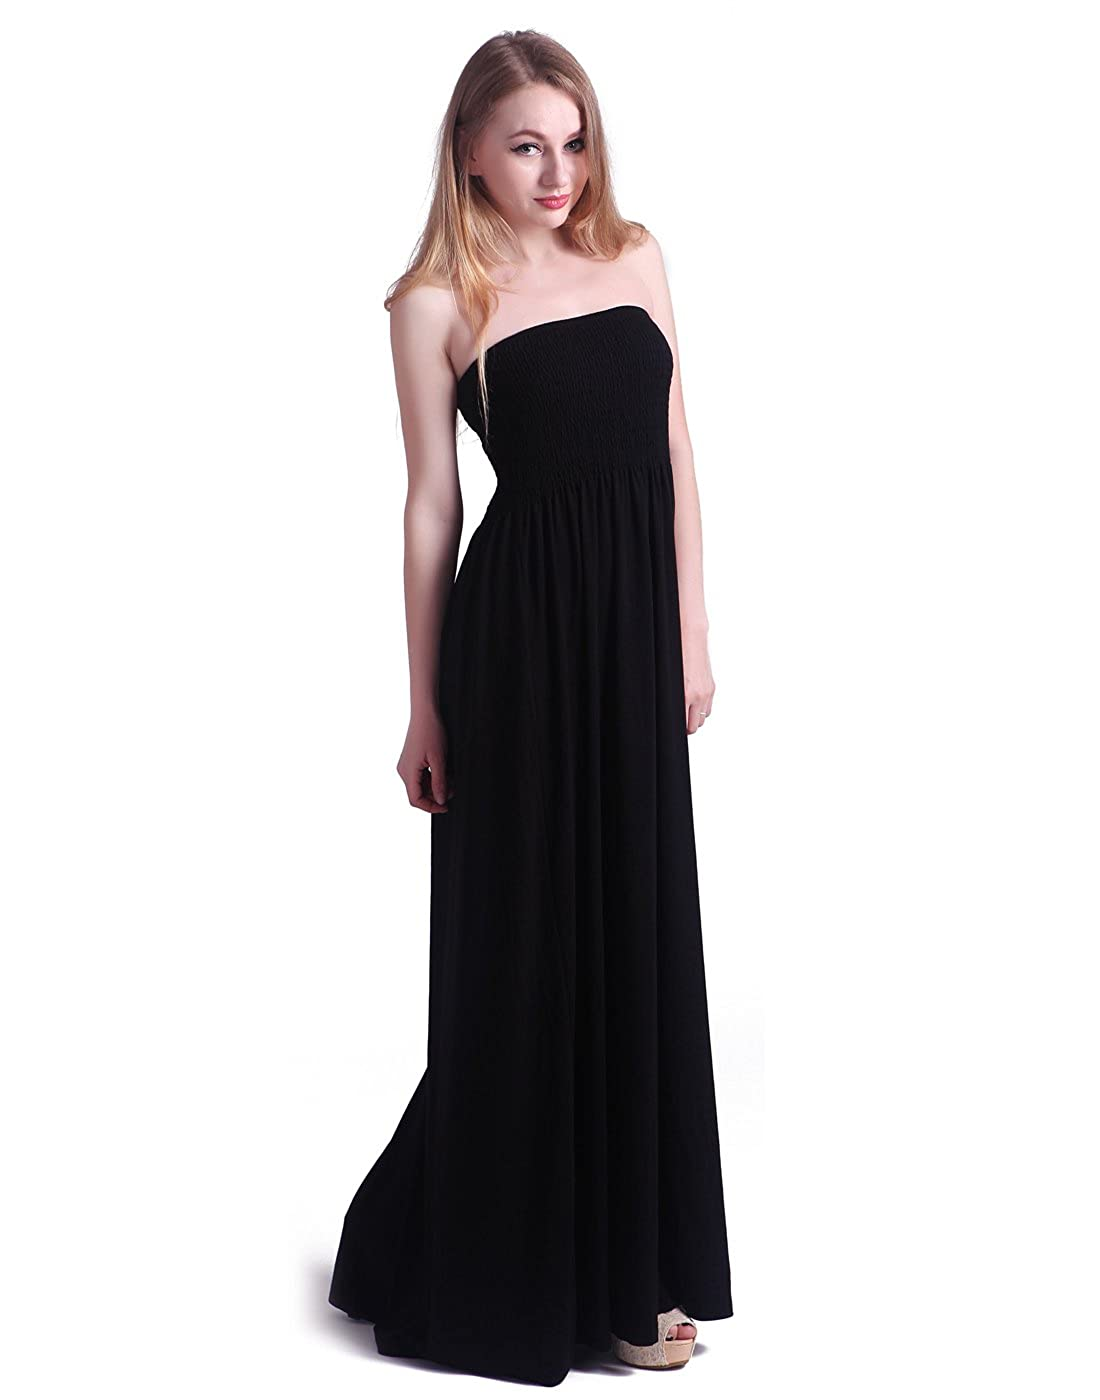 acc932cf292 HDE Women s Strapless Maxi Dress Plus Size Tube Top Long Skirt Sundress  Cover Up at Amazon Women s Clothing store